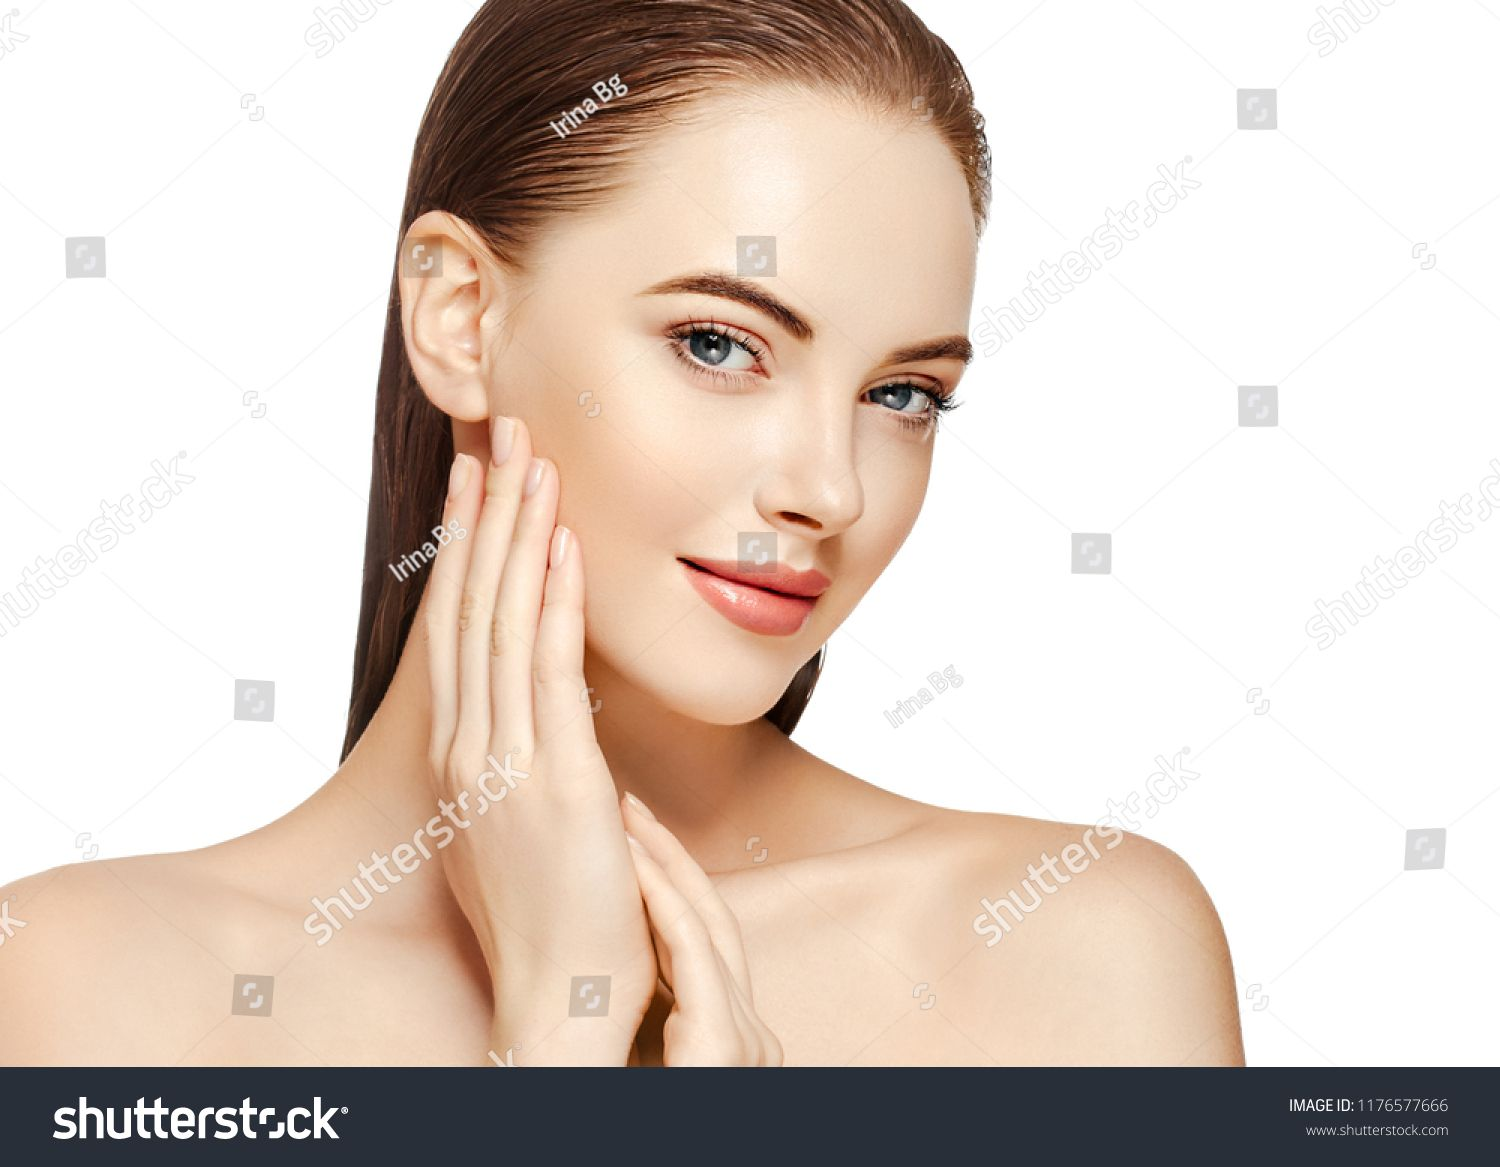 Beautiful skin woman with healthy hair and beauty eyes